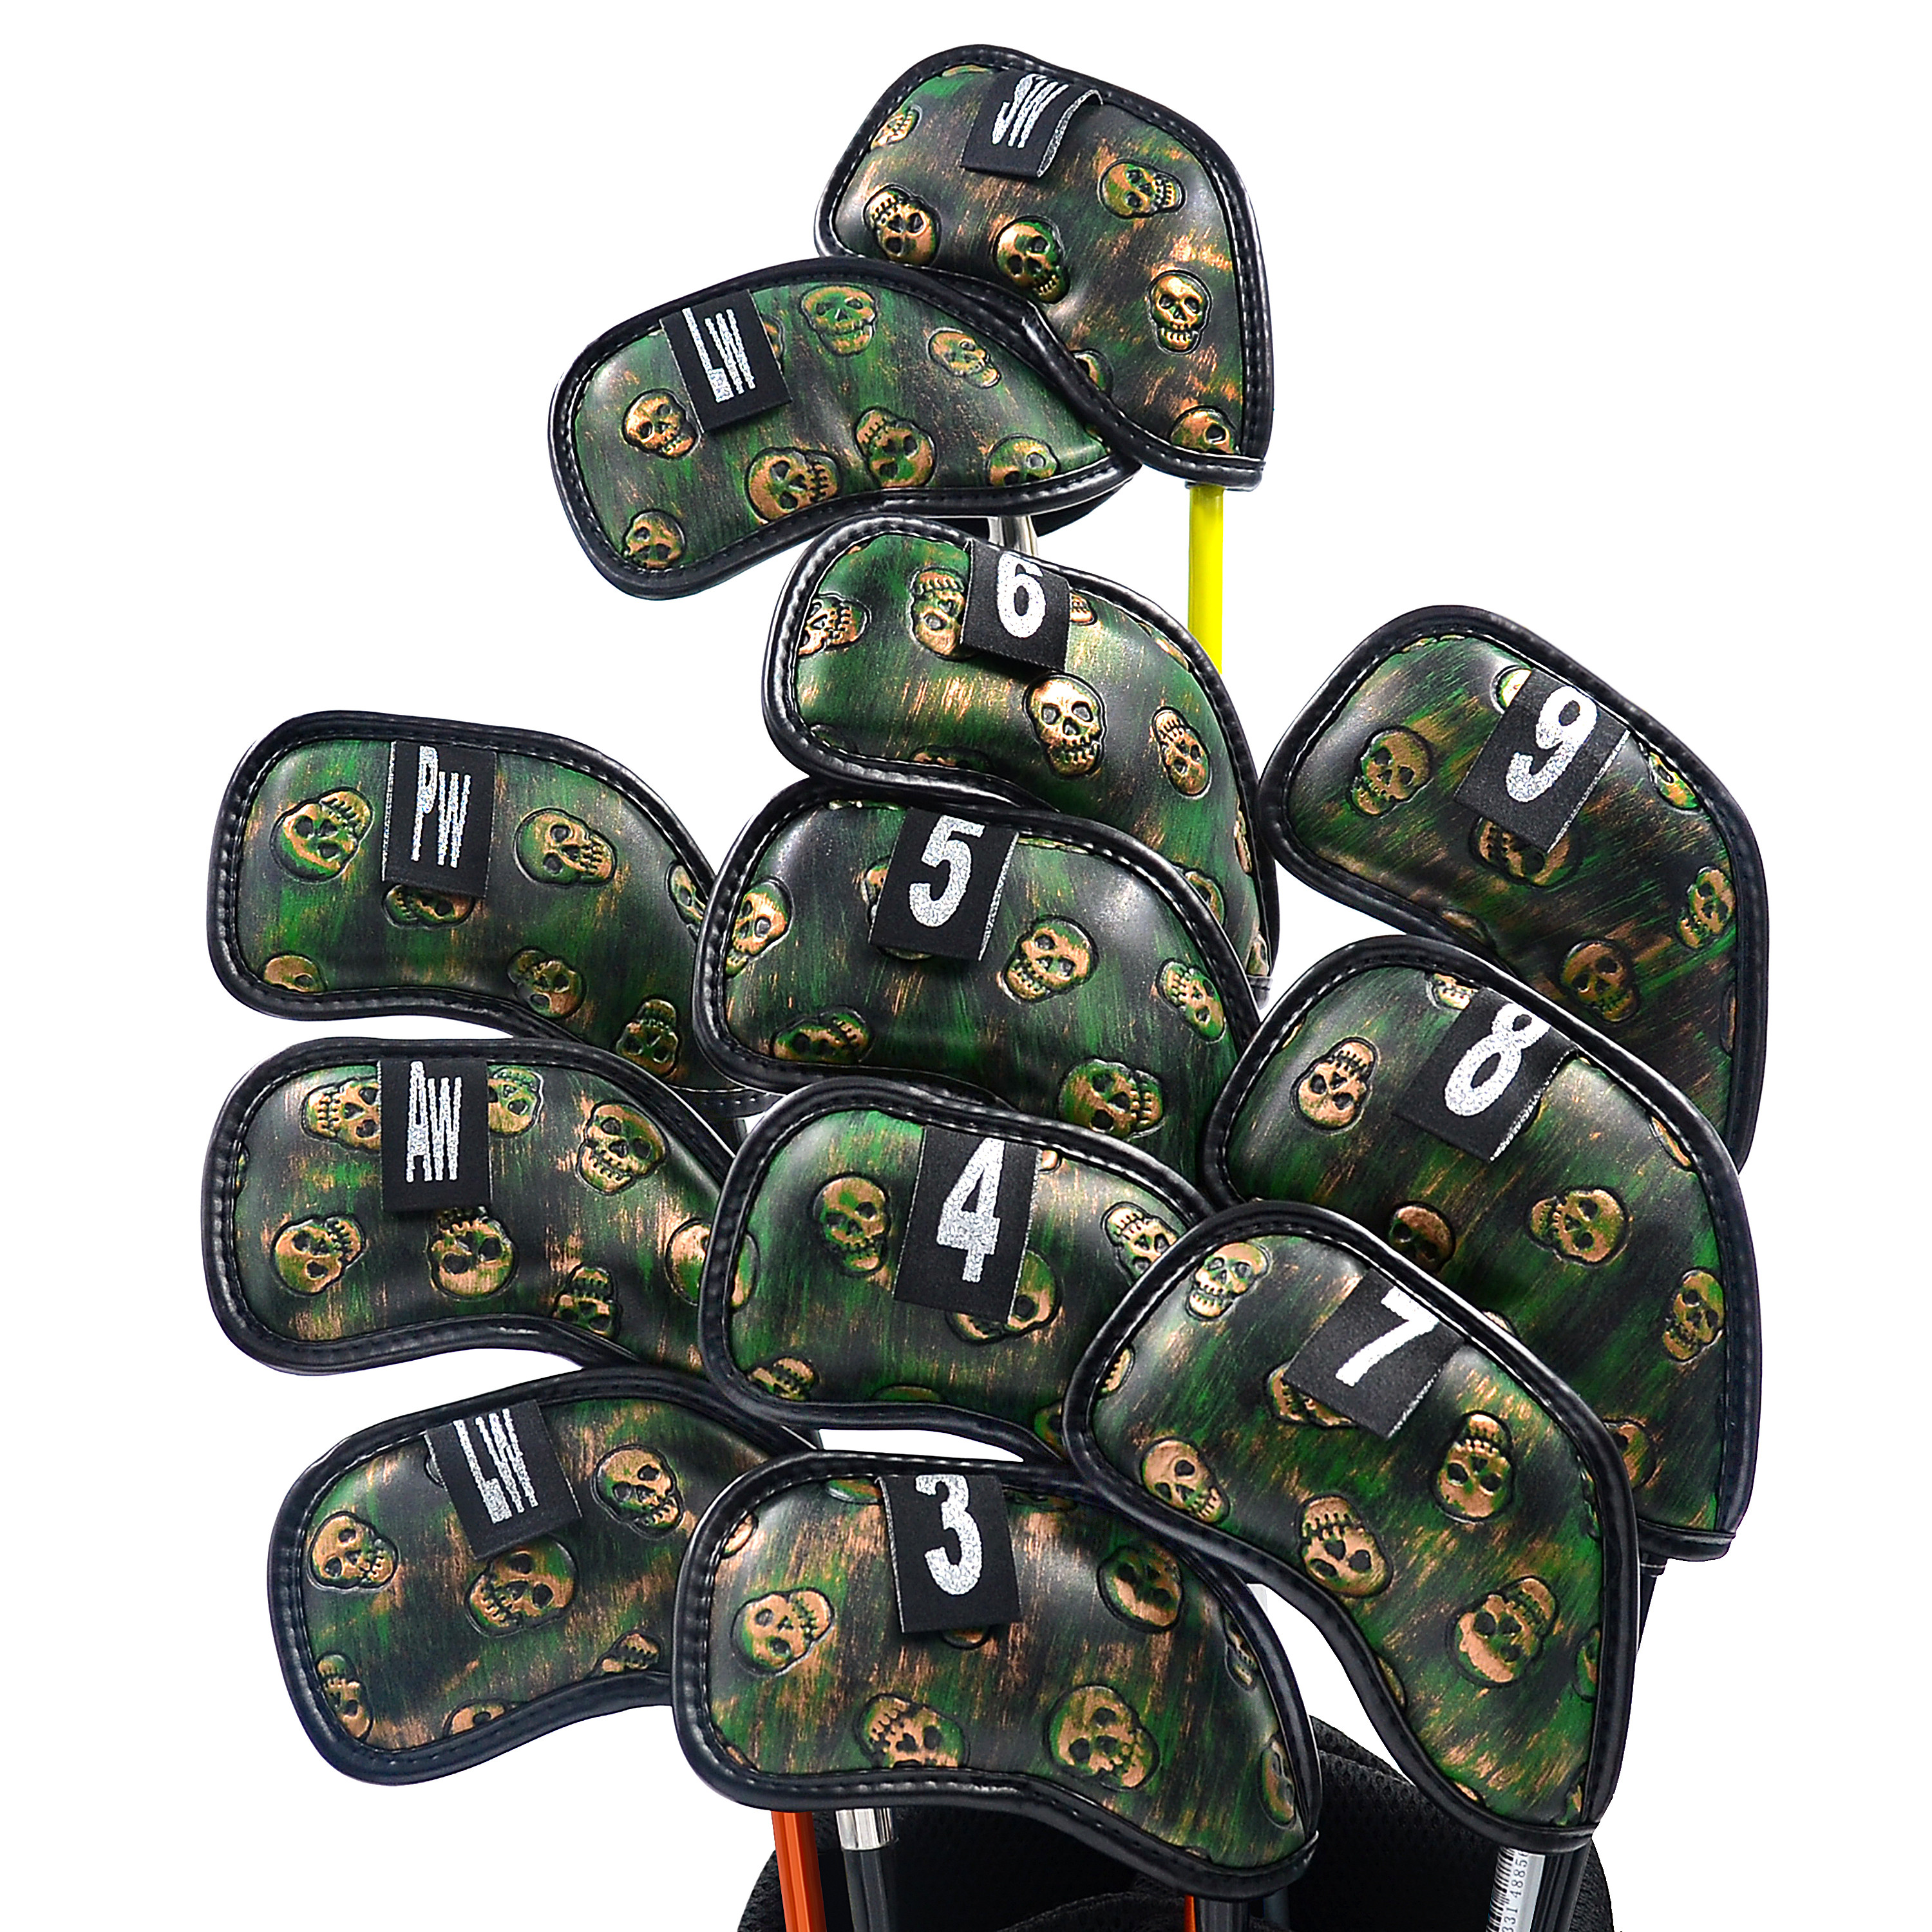 NEW Original Champkey Monster Skull Golf Iron Head Cover Pack Of 12pcs(3~9,A,P,S,L,L)- Black Green Color Golf Iron Headcover